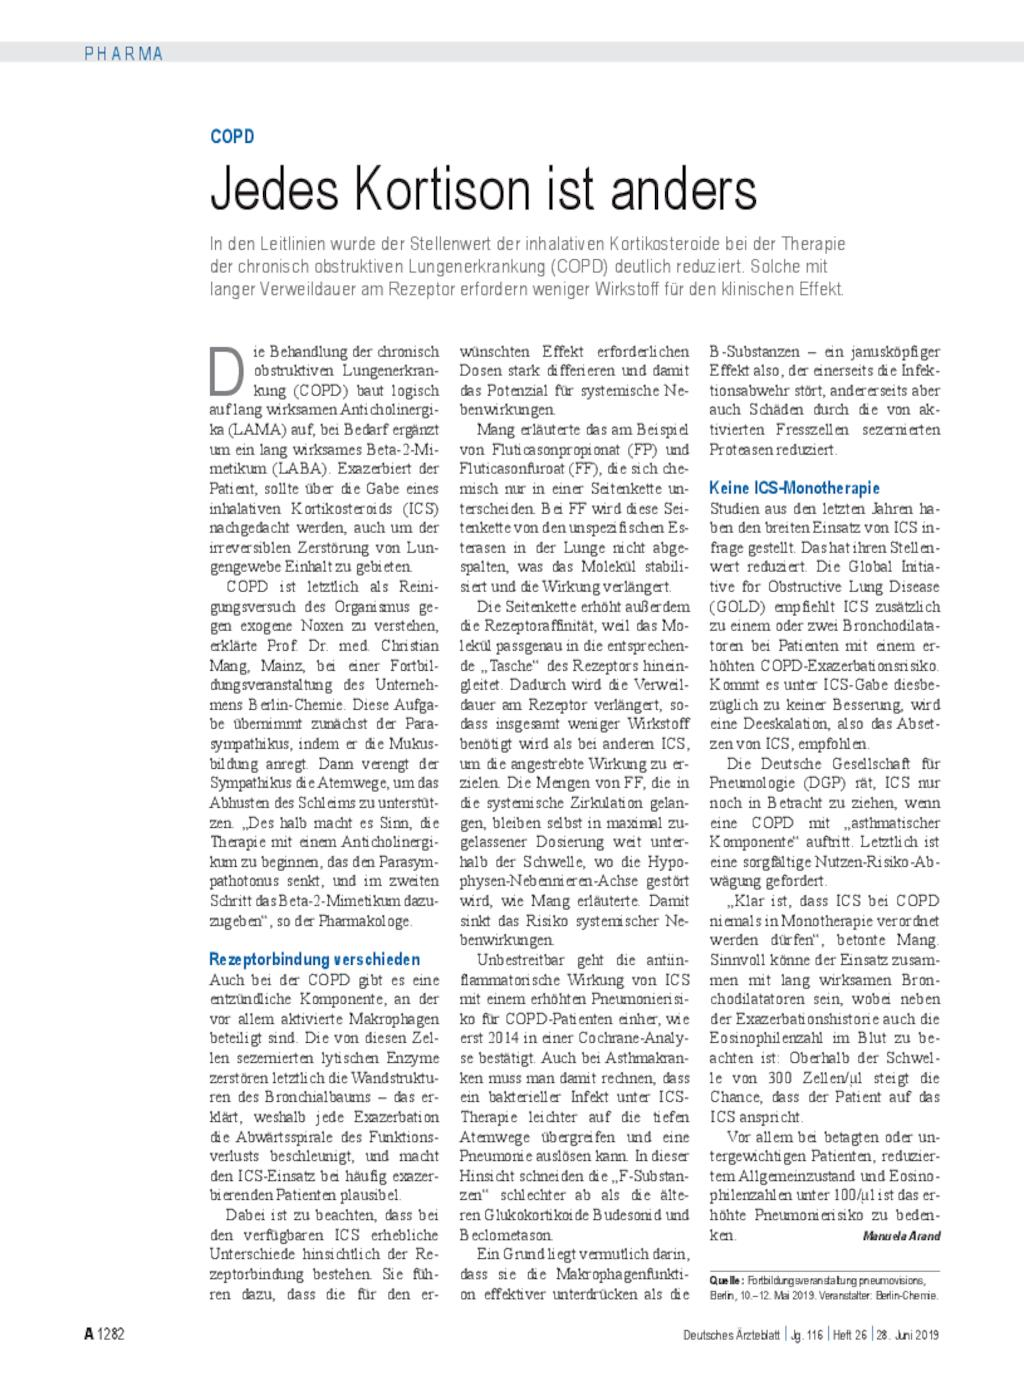 COPD: Jedes Kortison ist anders